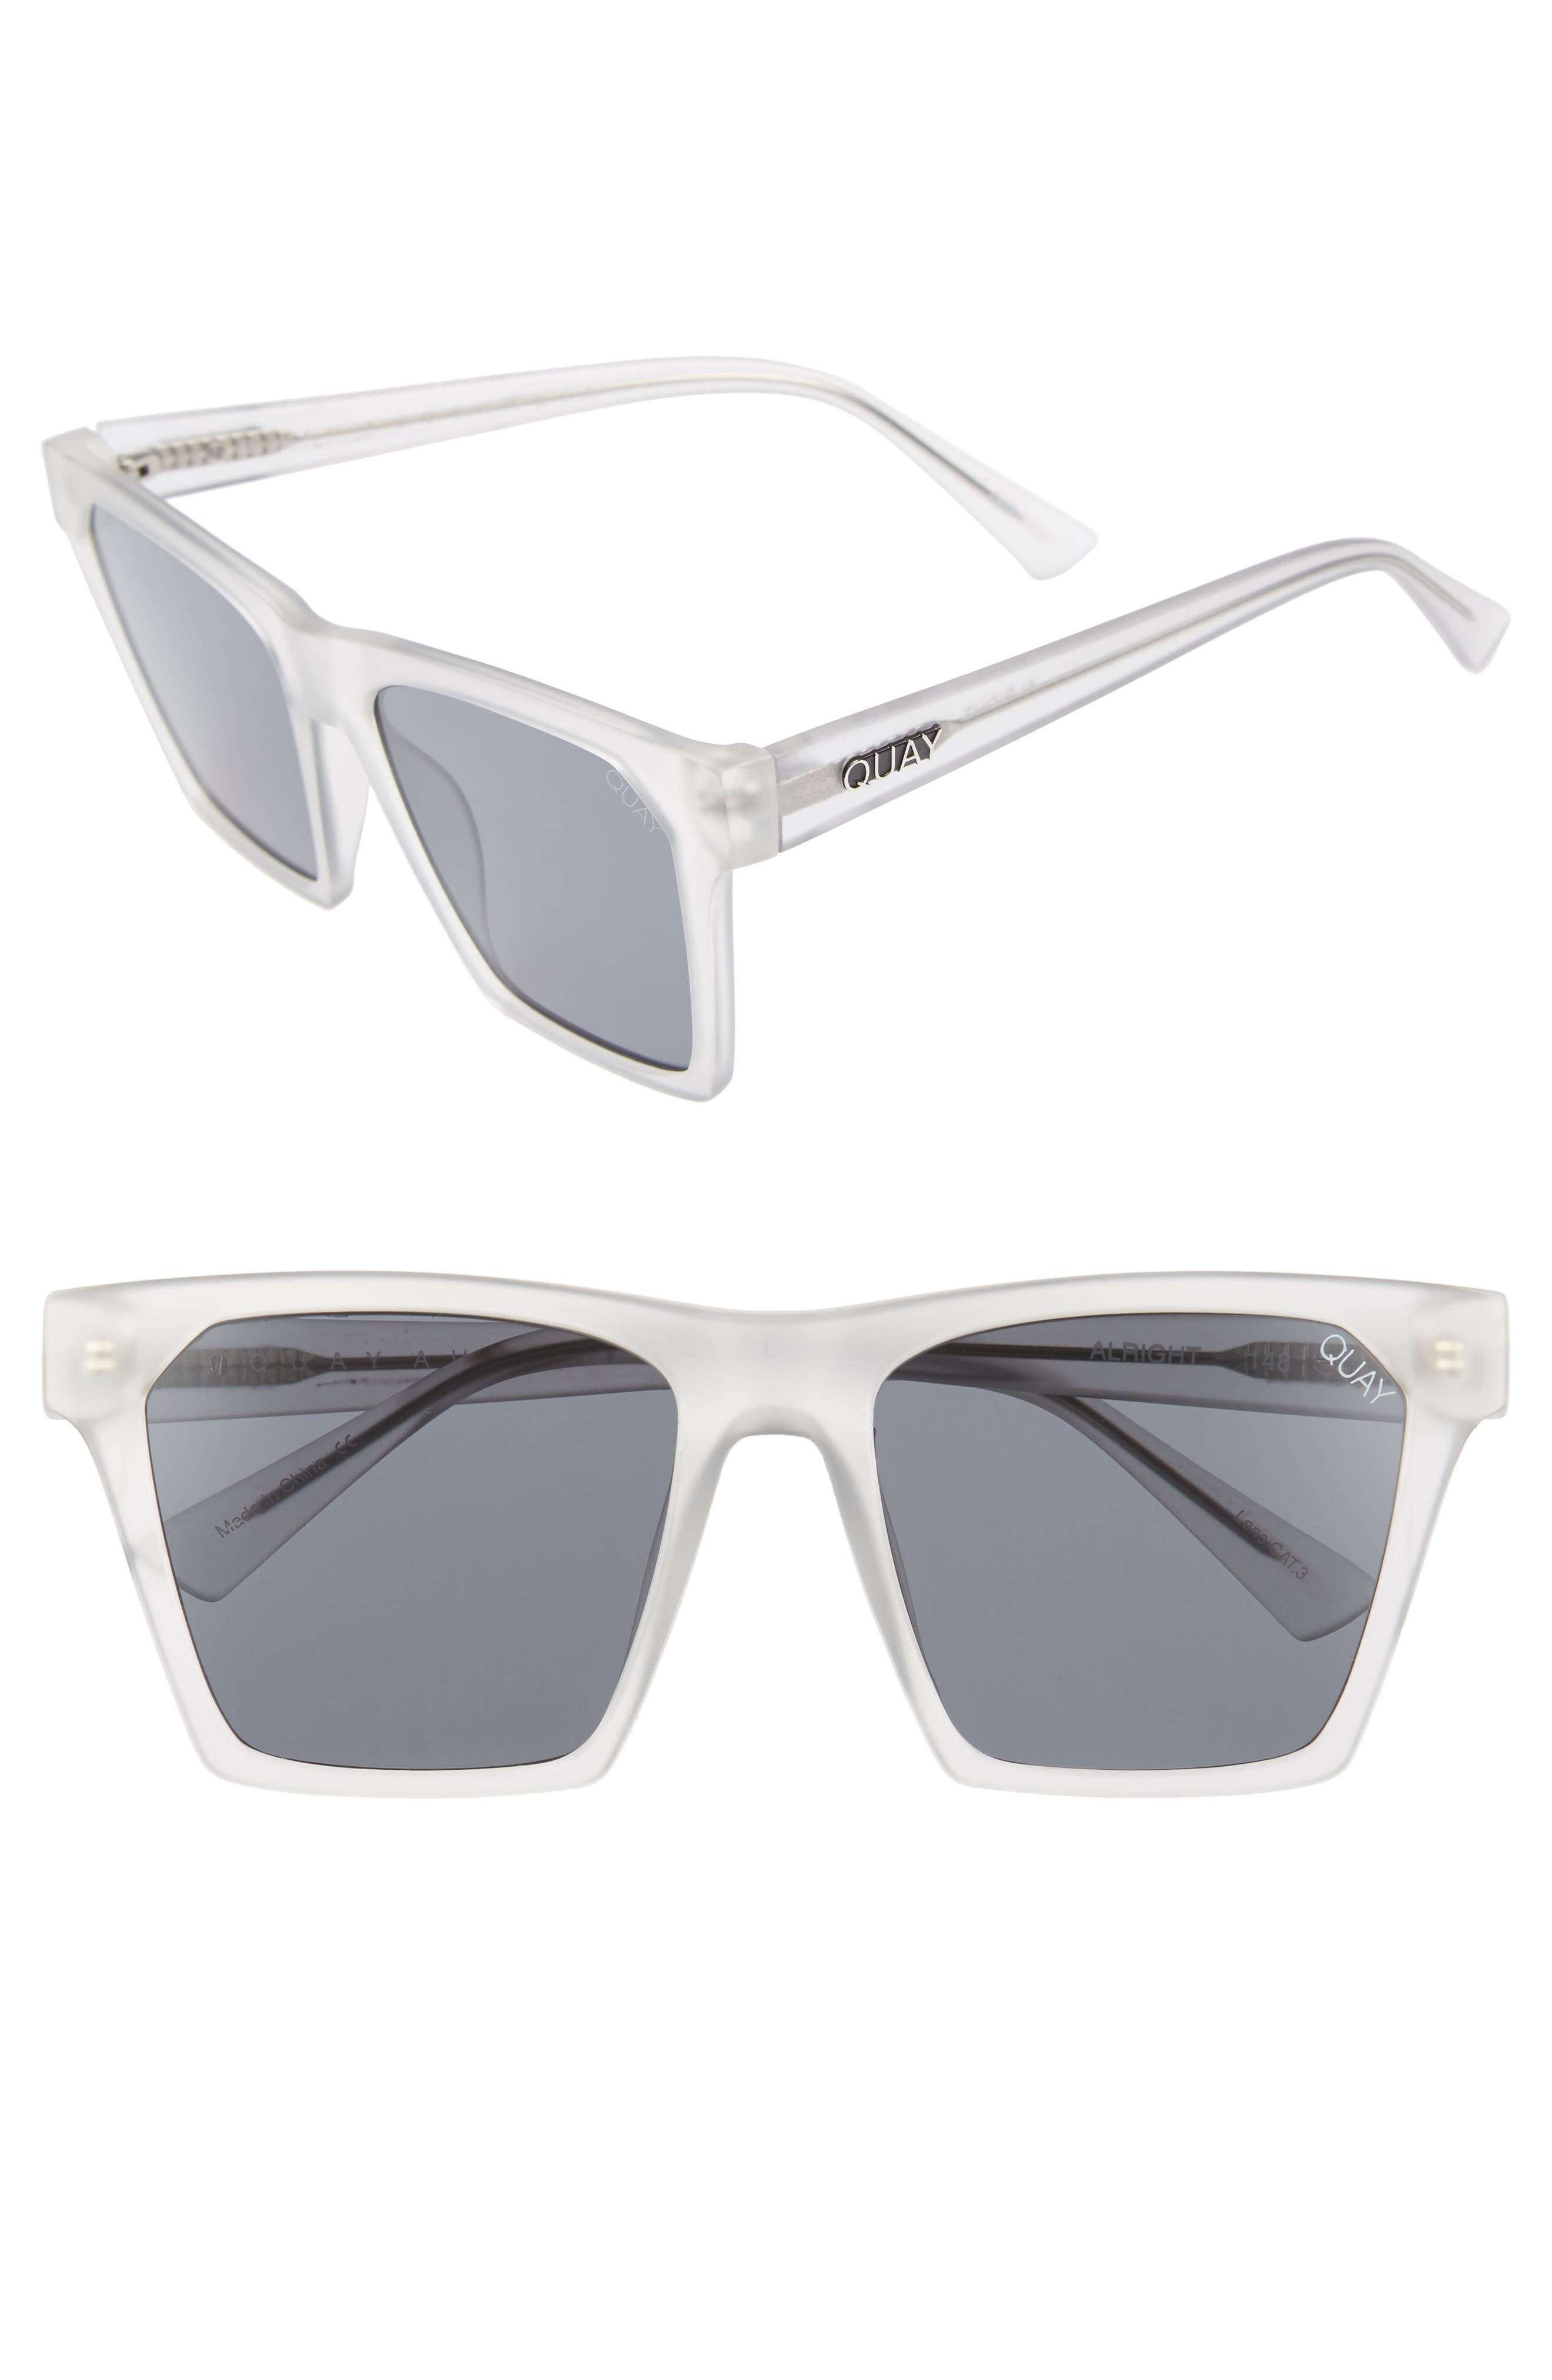 x Missguided Alright 55mm Square Sunglasses,                             Main thumbnail 1, color,                             White/ Smoke